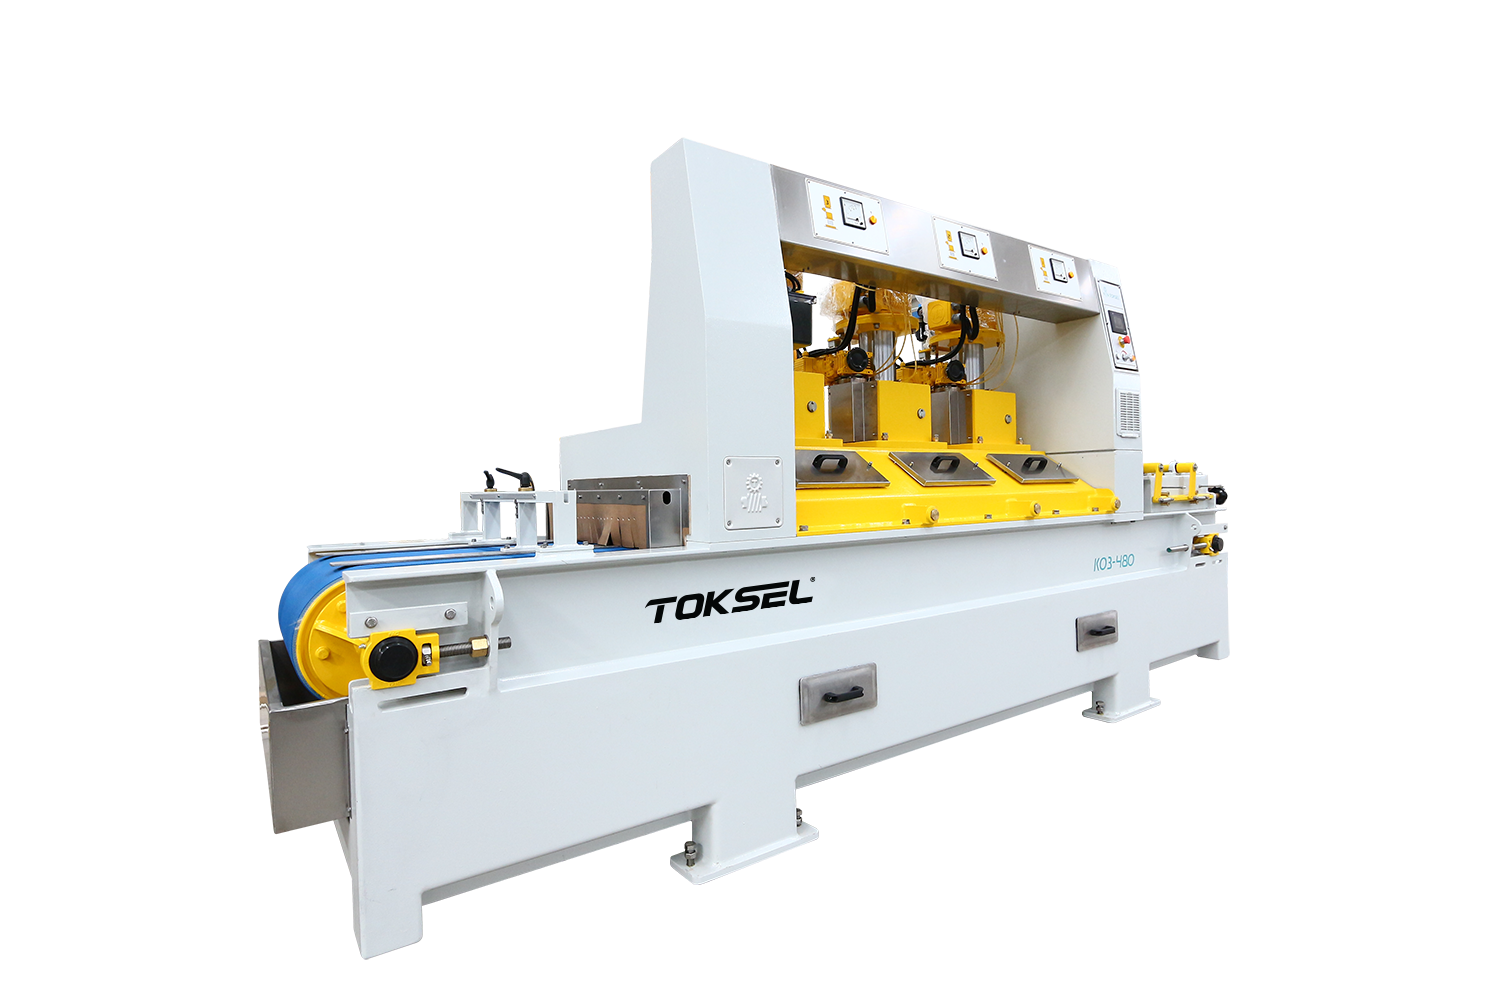 toksel_machinery_calibrating_machine